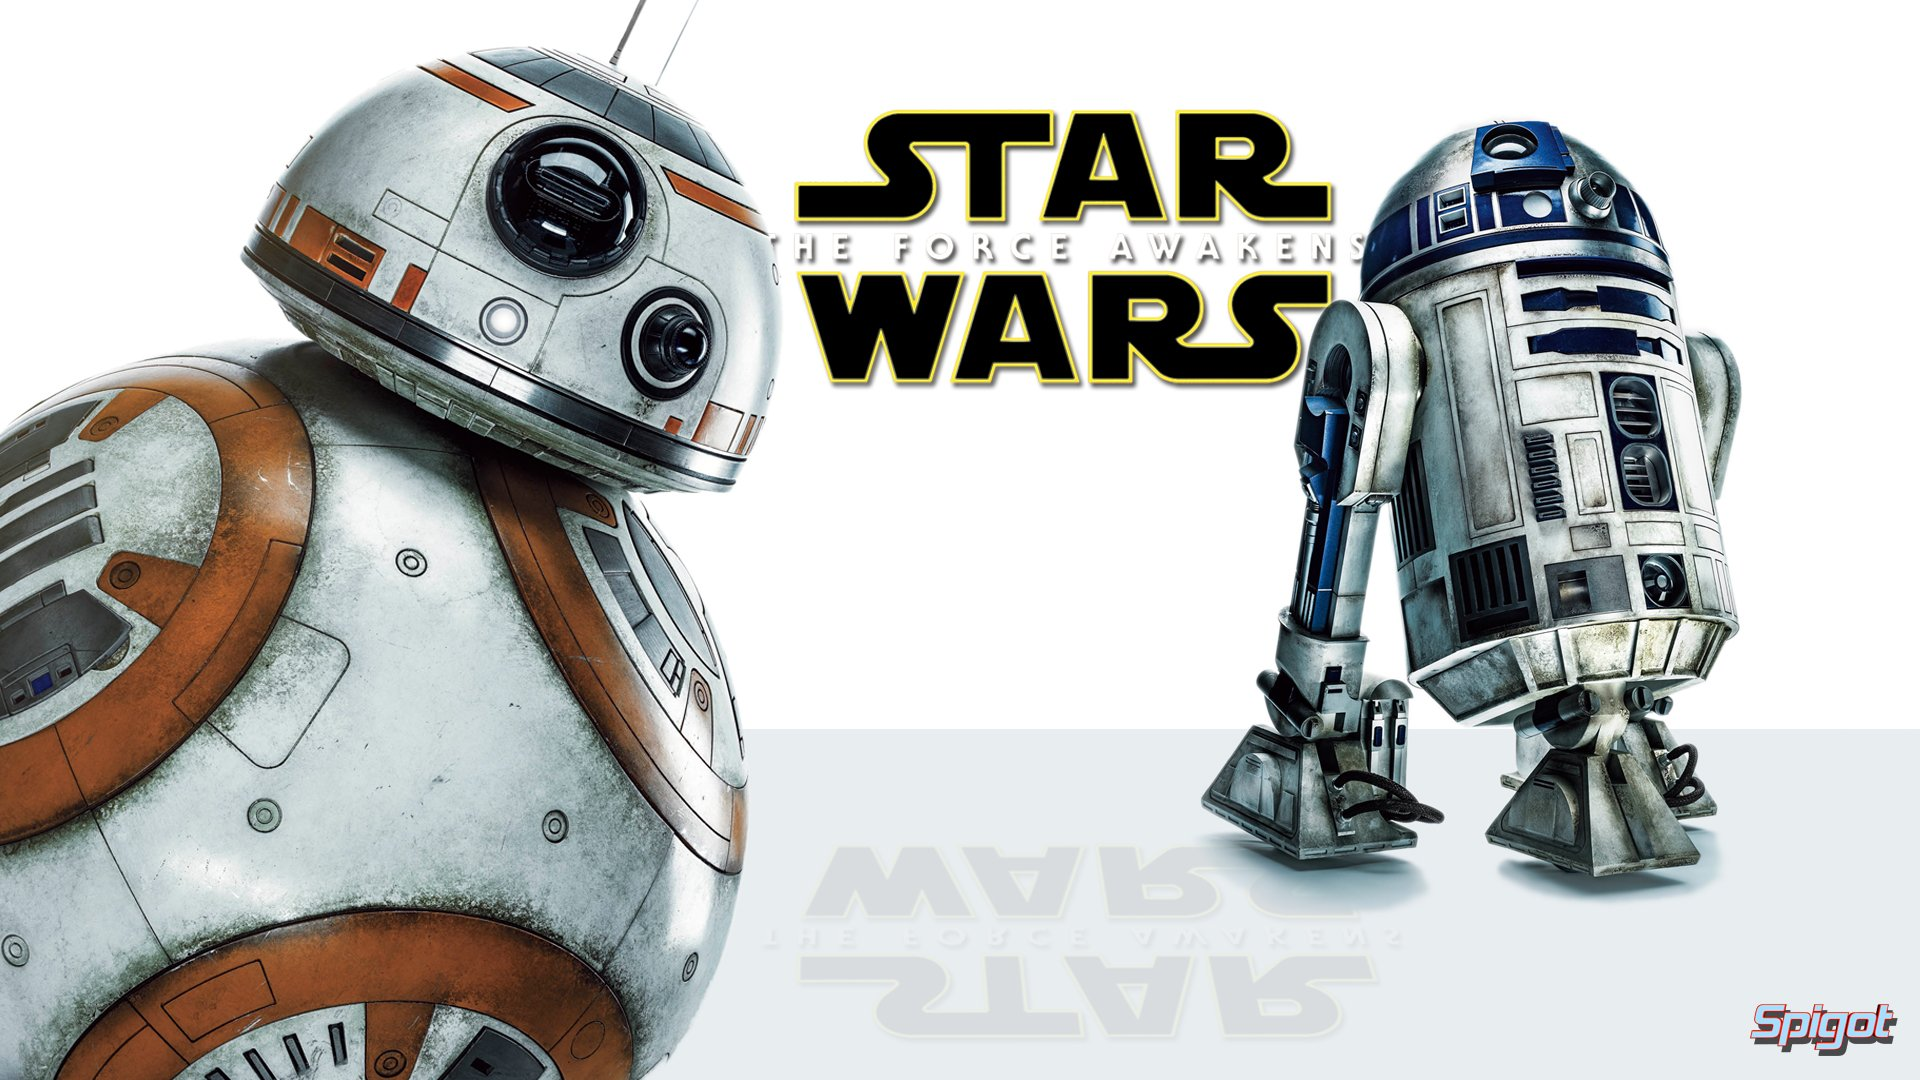 here are a couple of wallpapers of the droids you asked for david